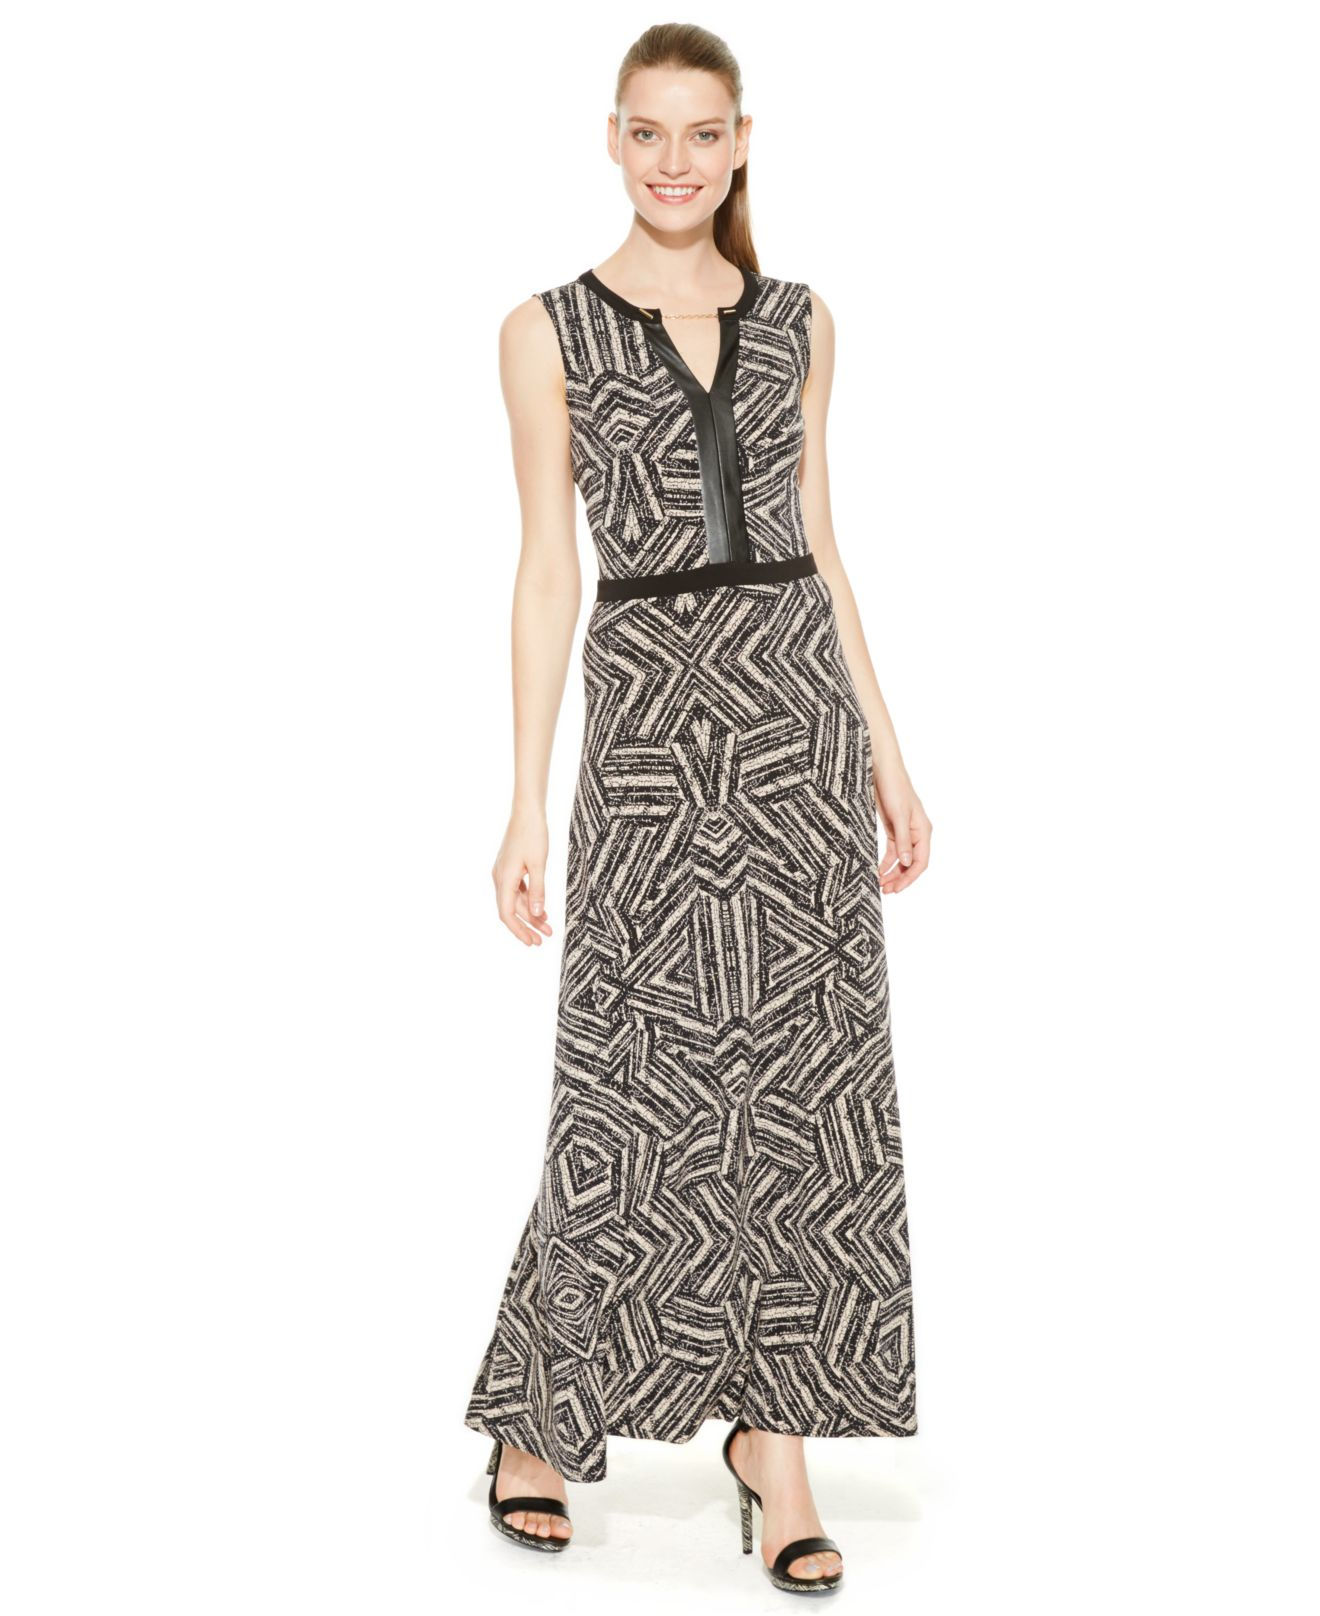 27fc8a158c4 Calvin Klein Printed Faux-leather-trim Maxi Dress in Black - Lyst